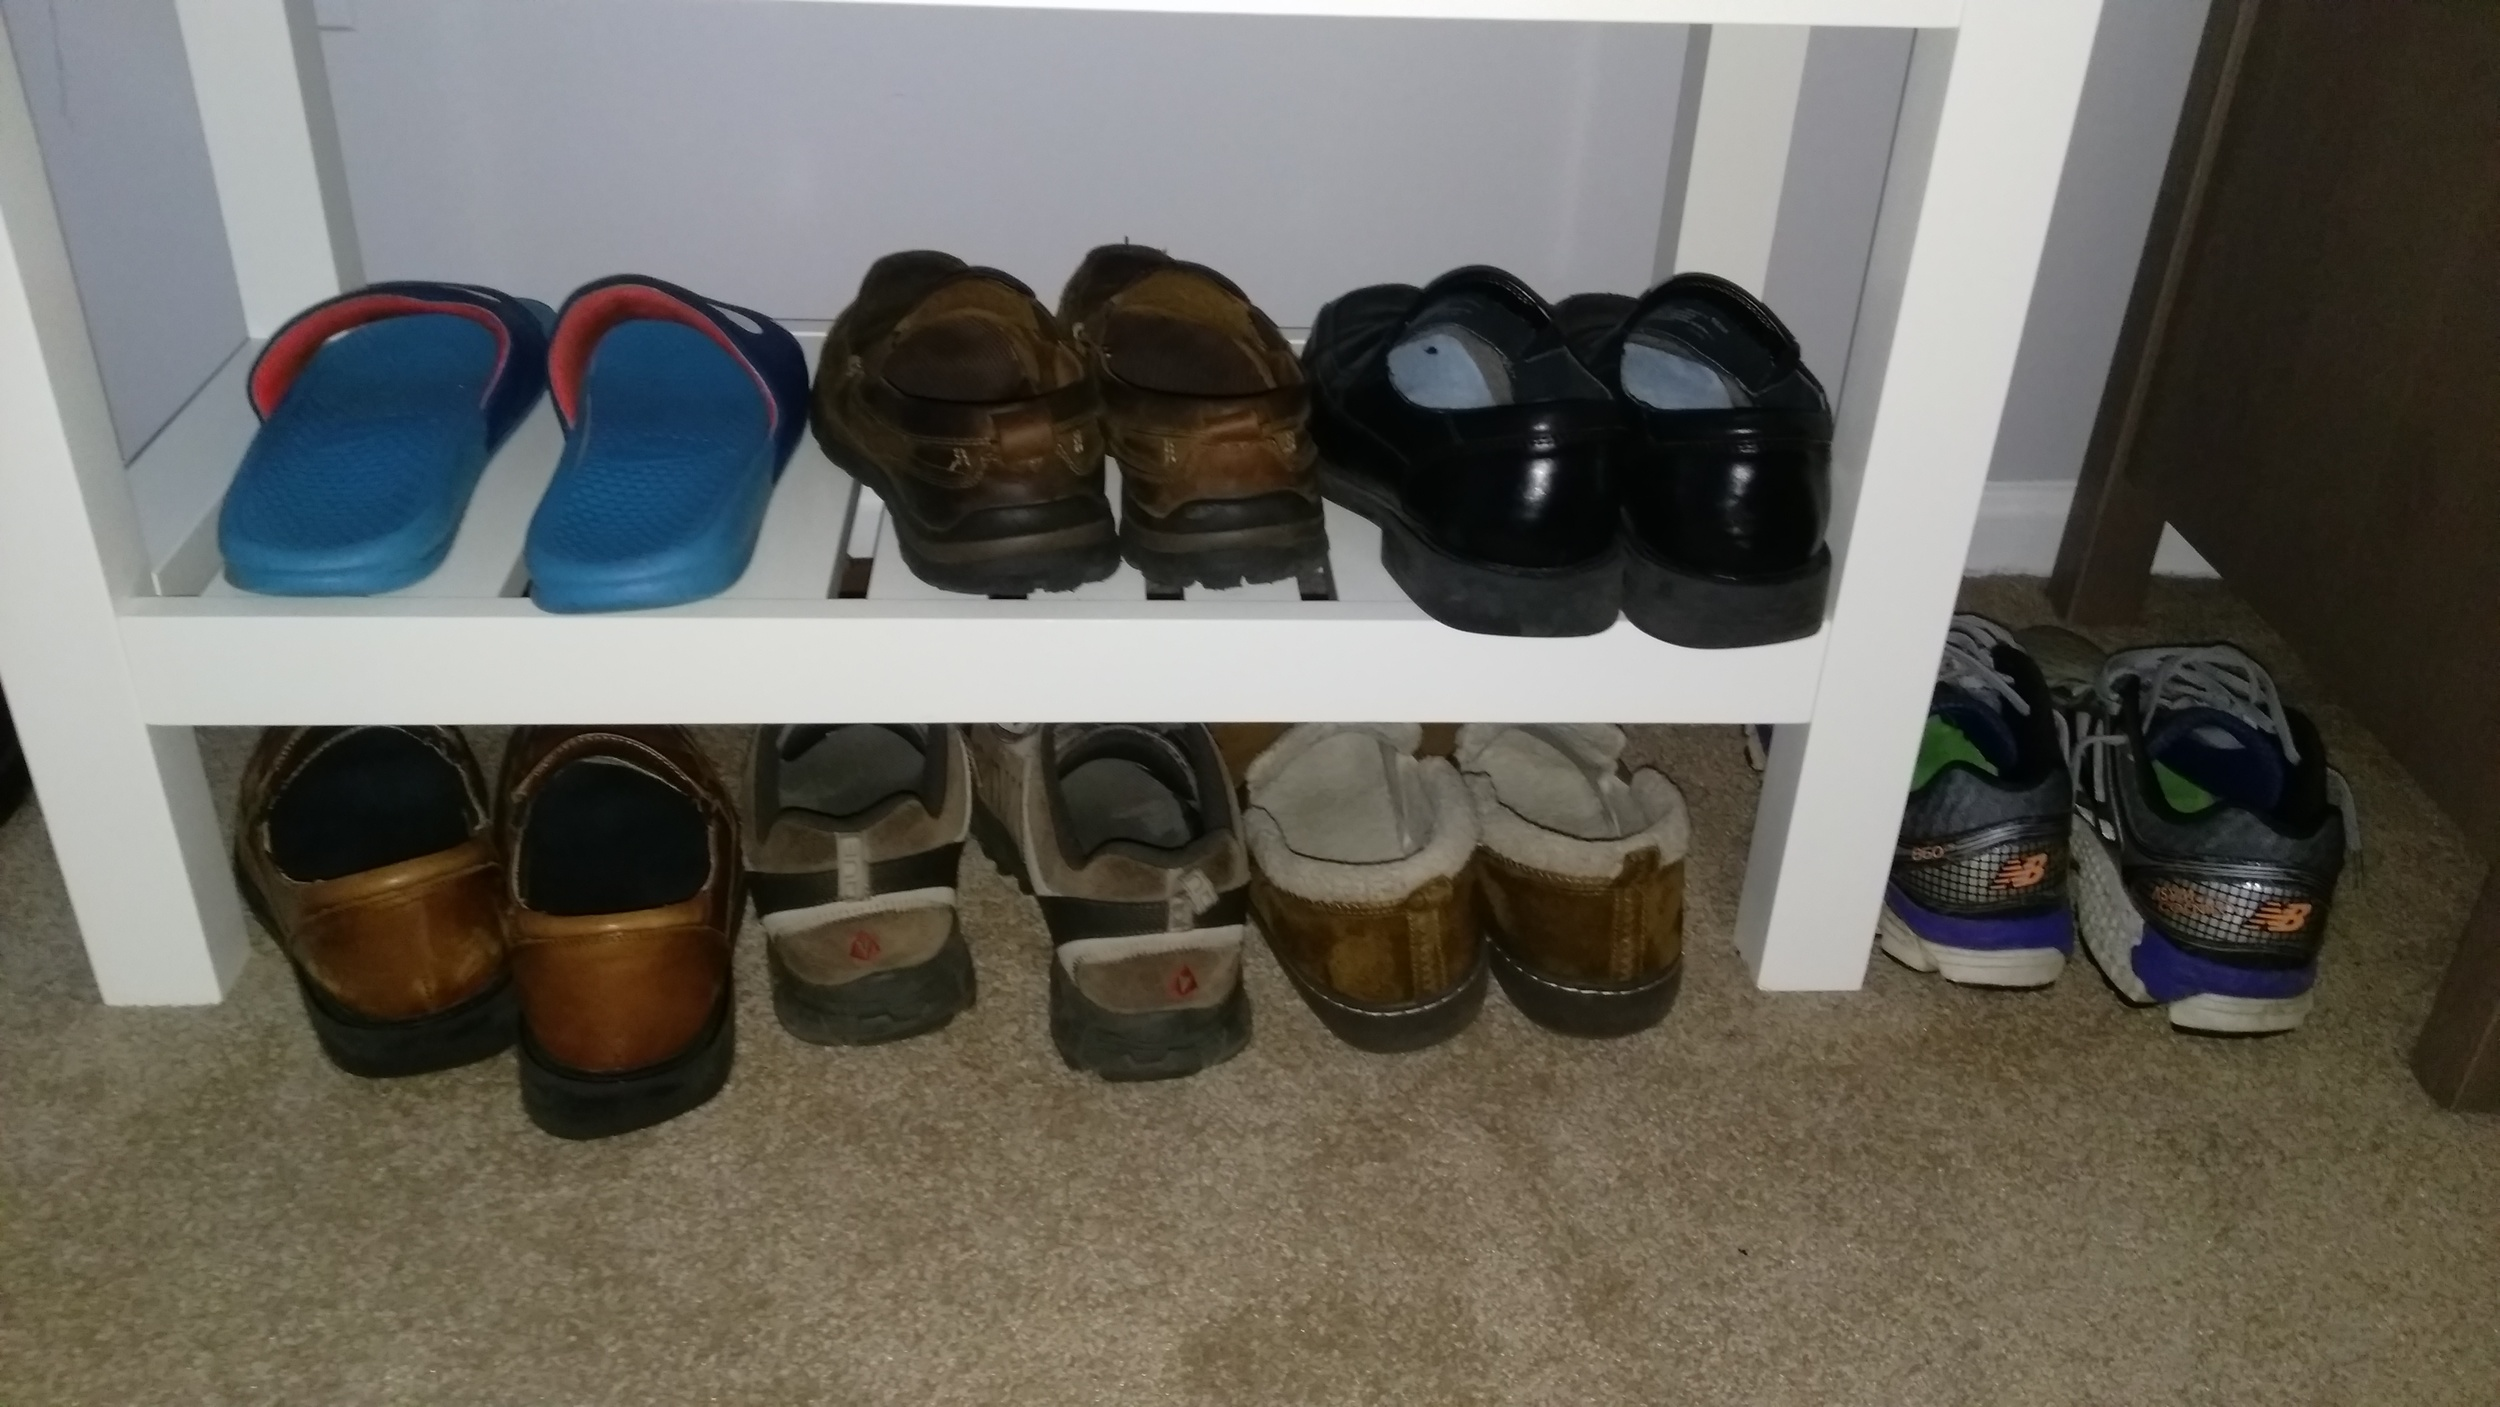 Everyday shoes.